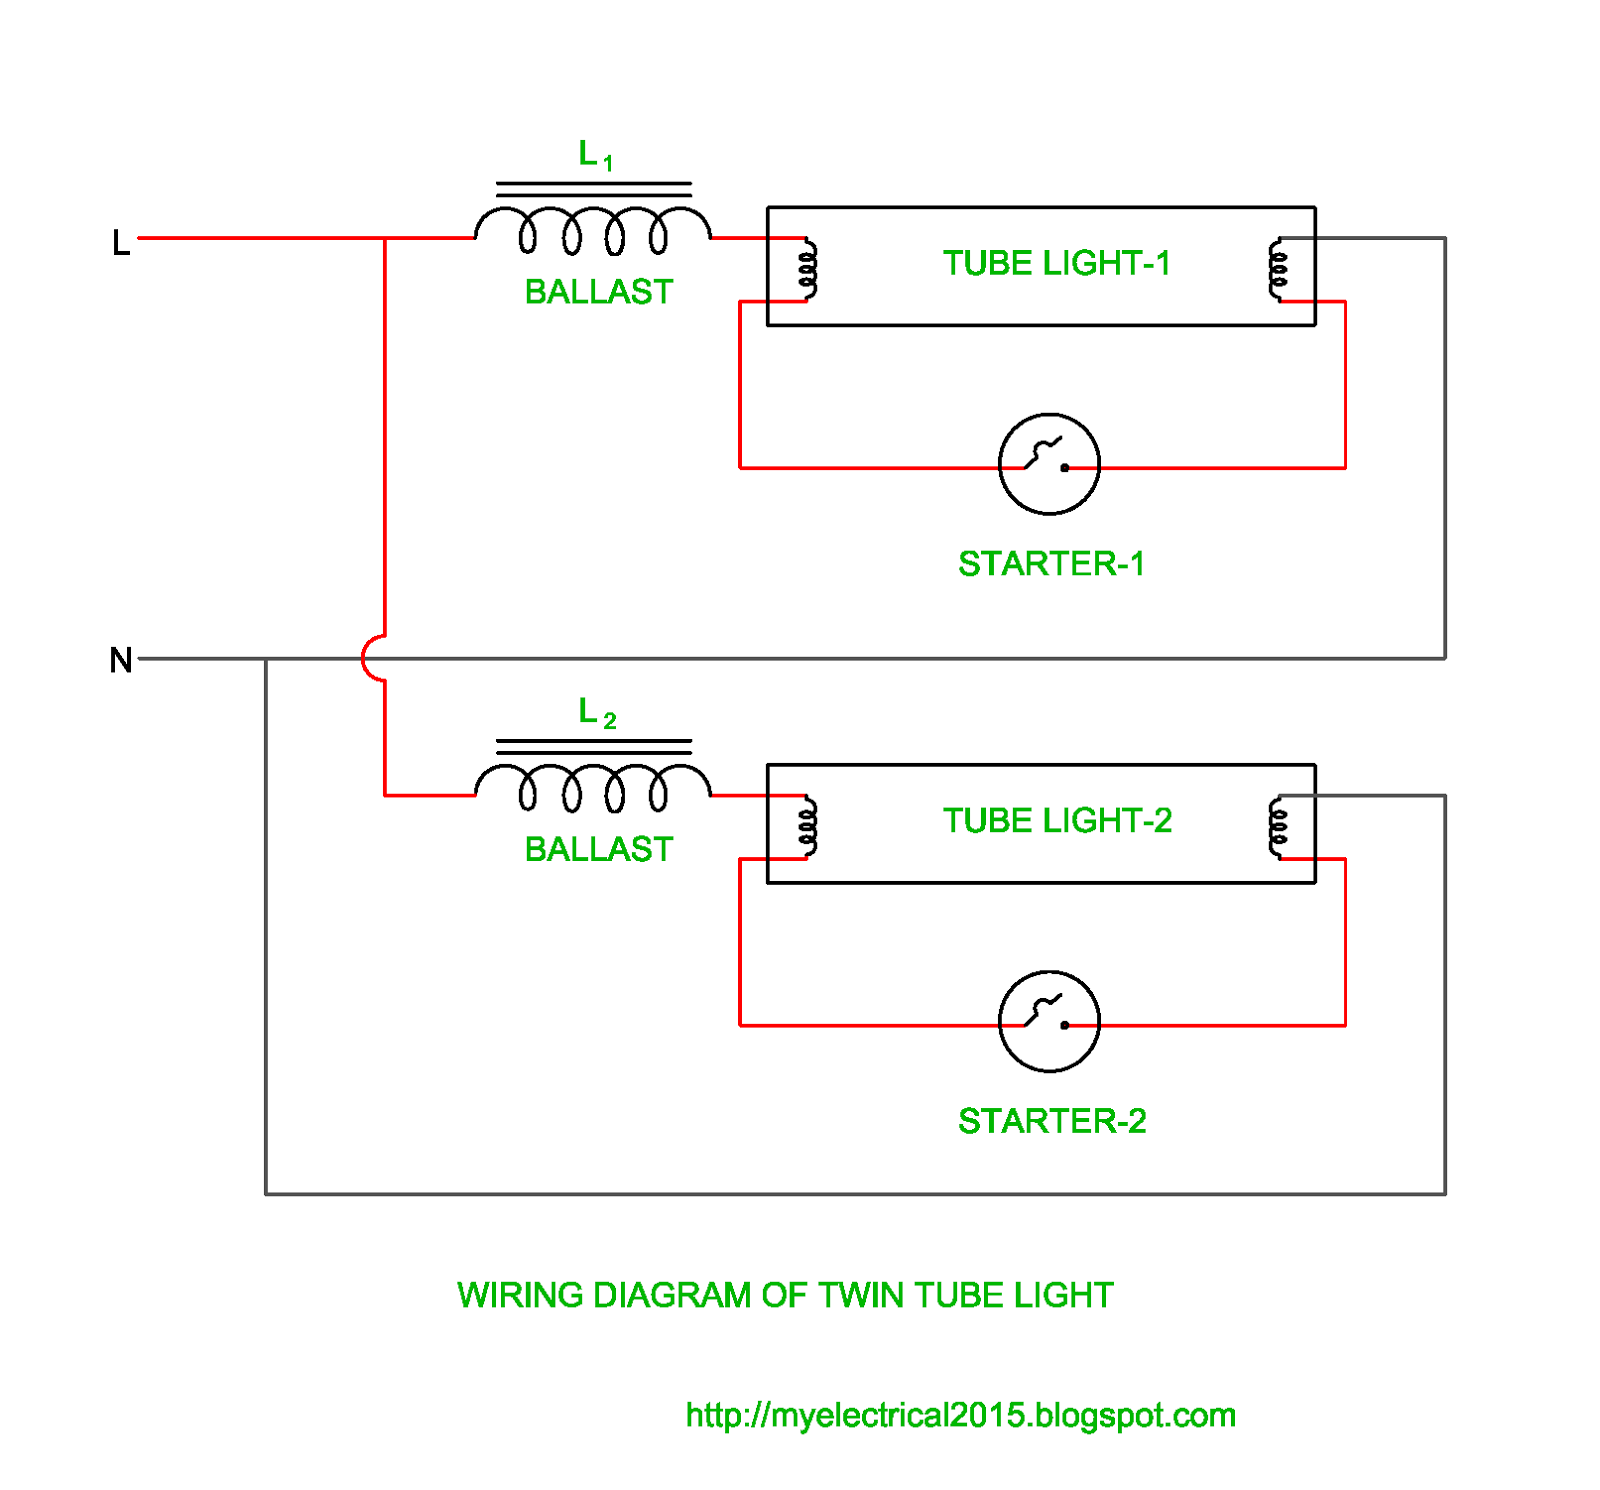 Wiring Diagram For Led Tube Lights Block Of Transmitter And Receiver Twin Light Electrical Revolution